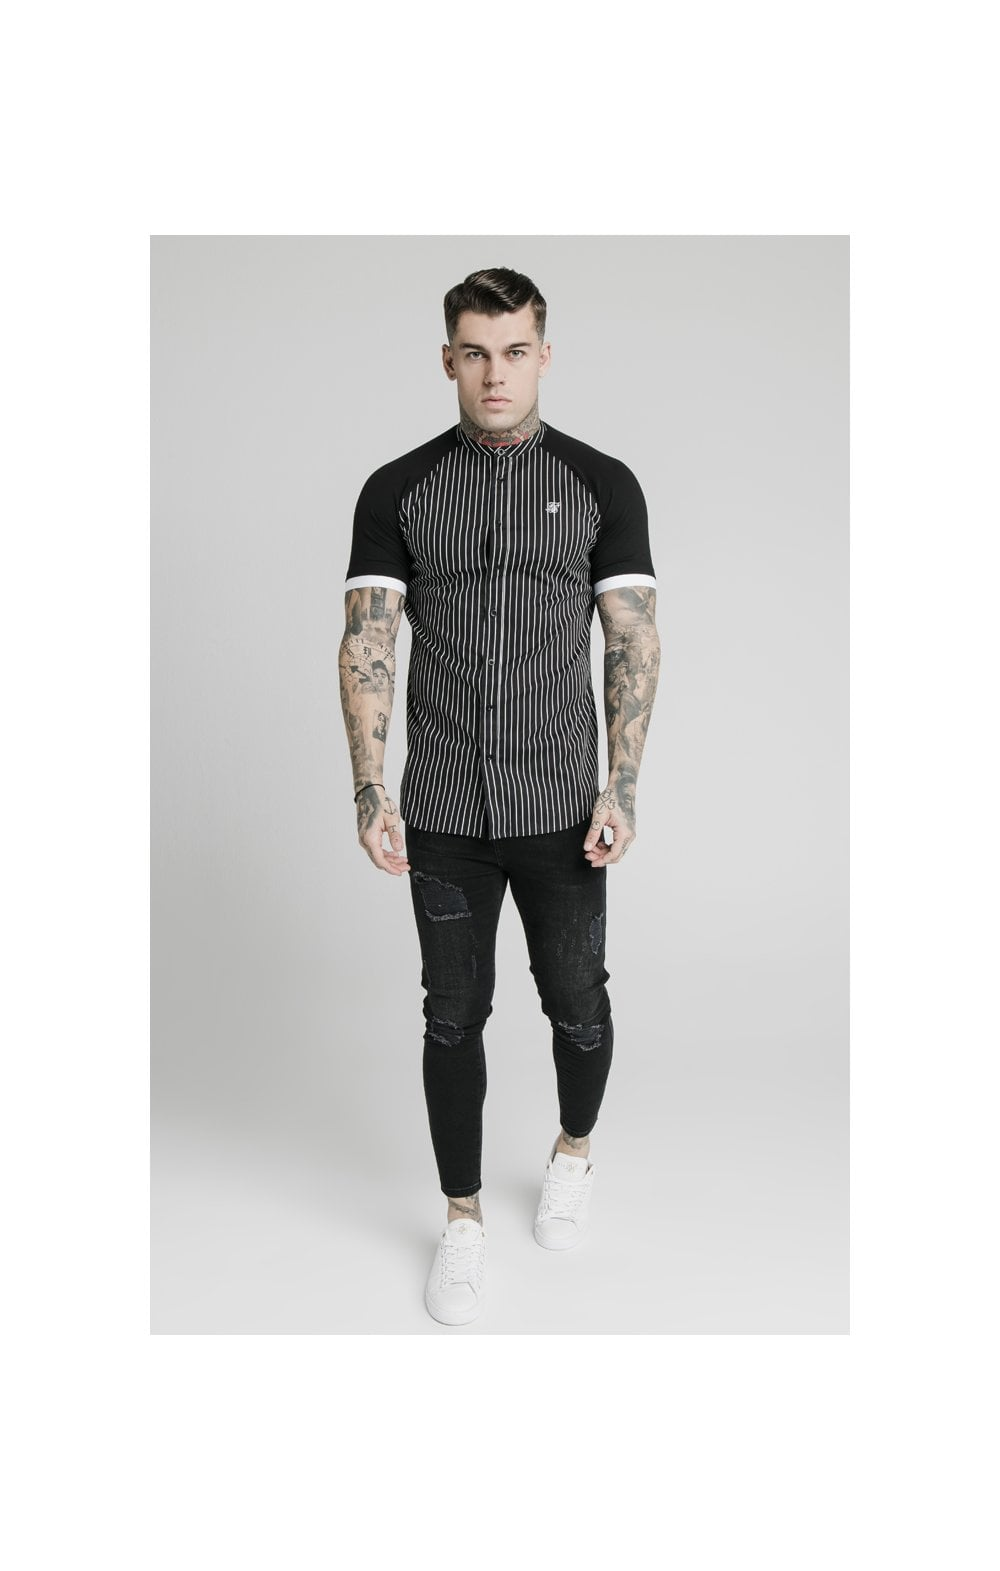 Load image into Gallery viewer, SikSilk S/S Raglan Inset Cuff  Shirt - Black & White (2)